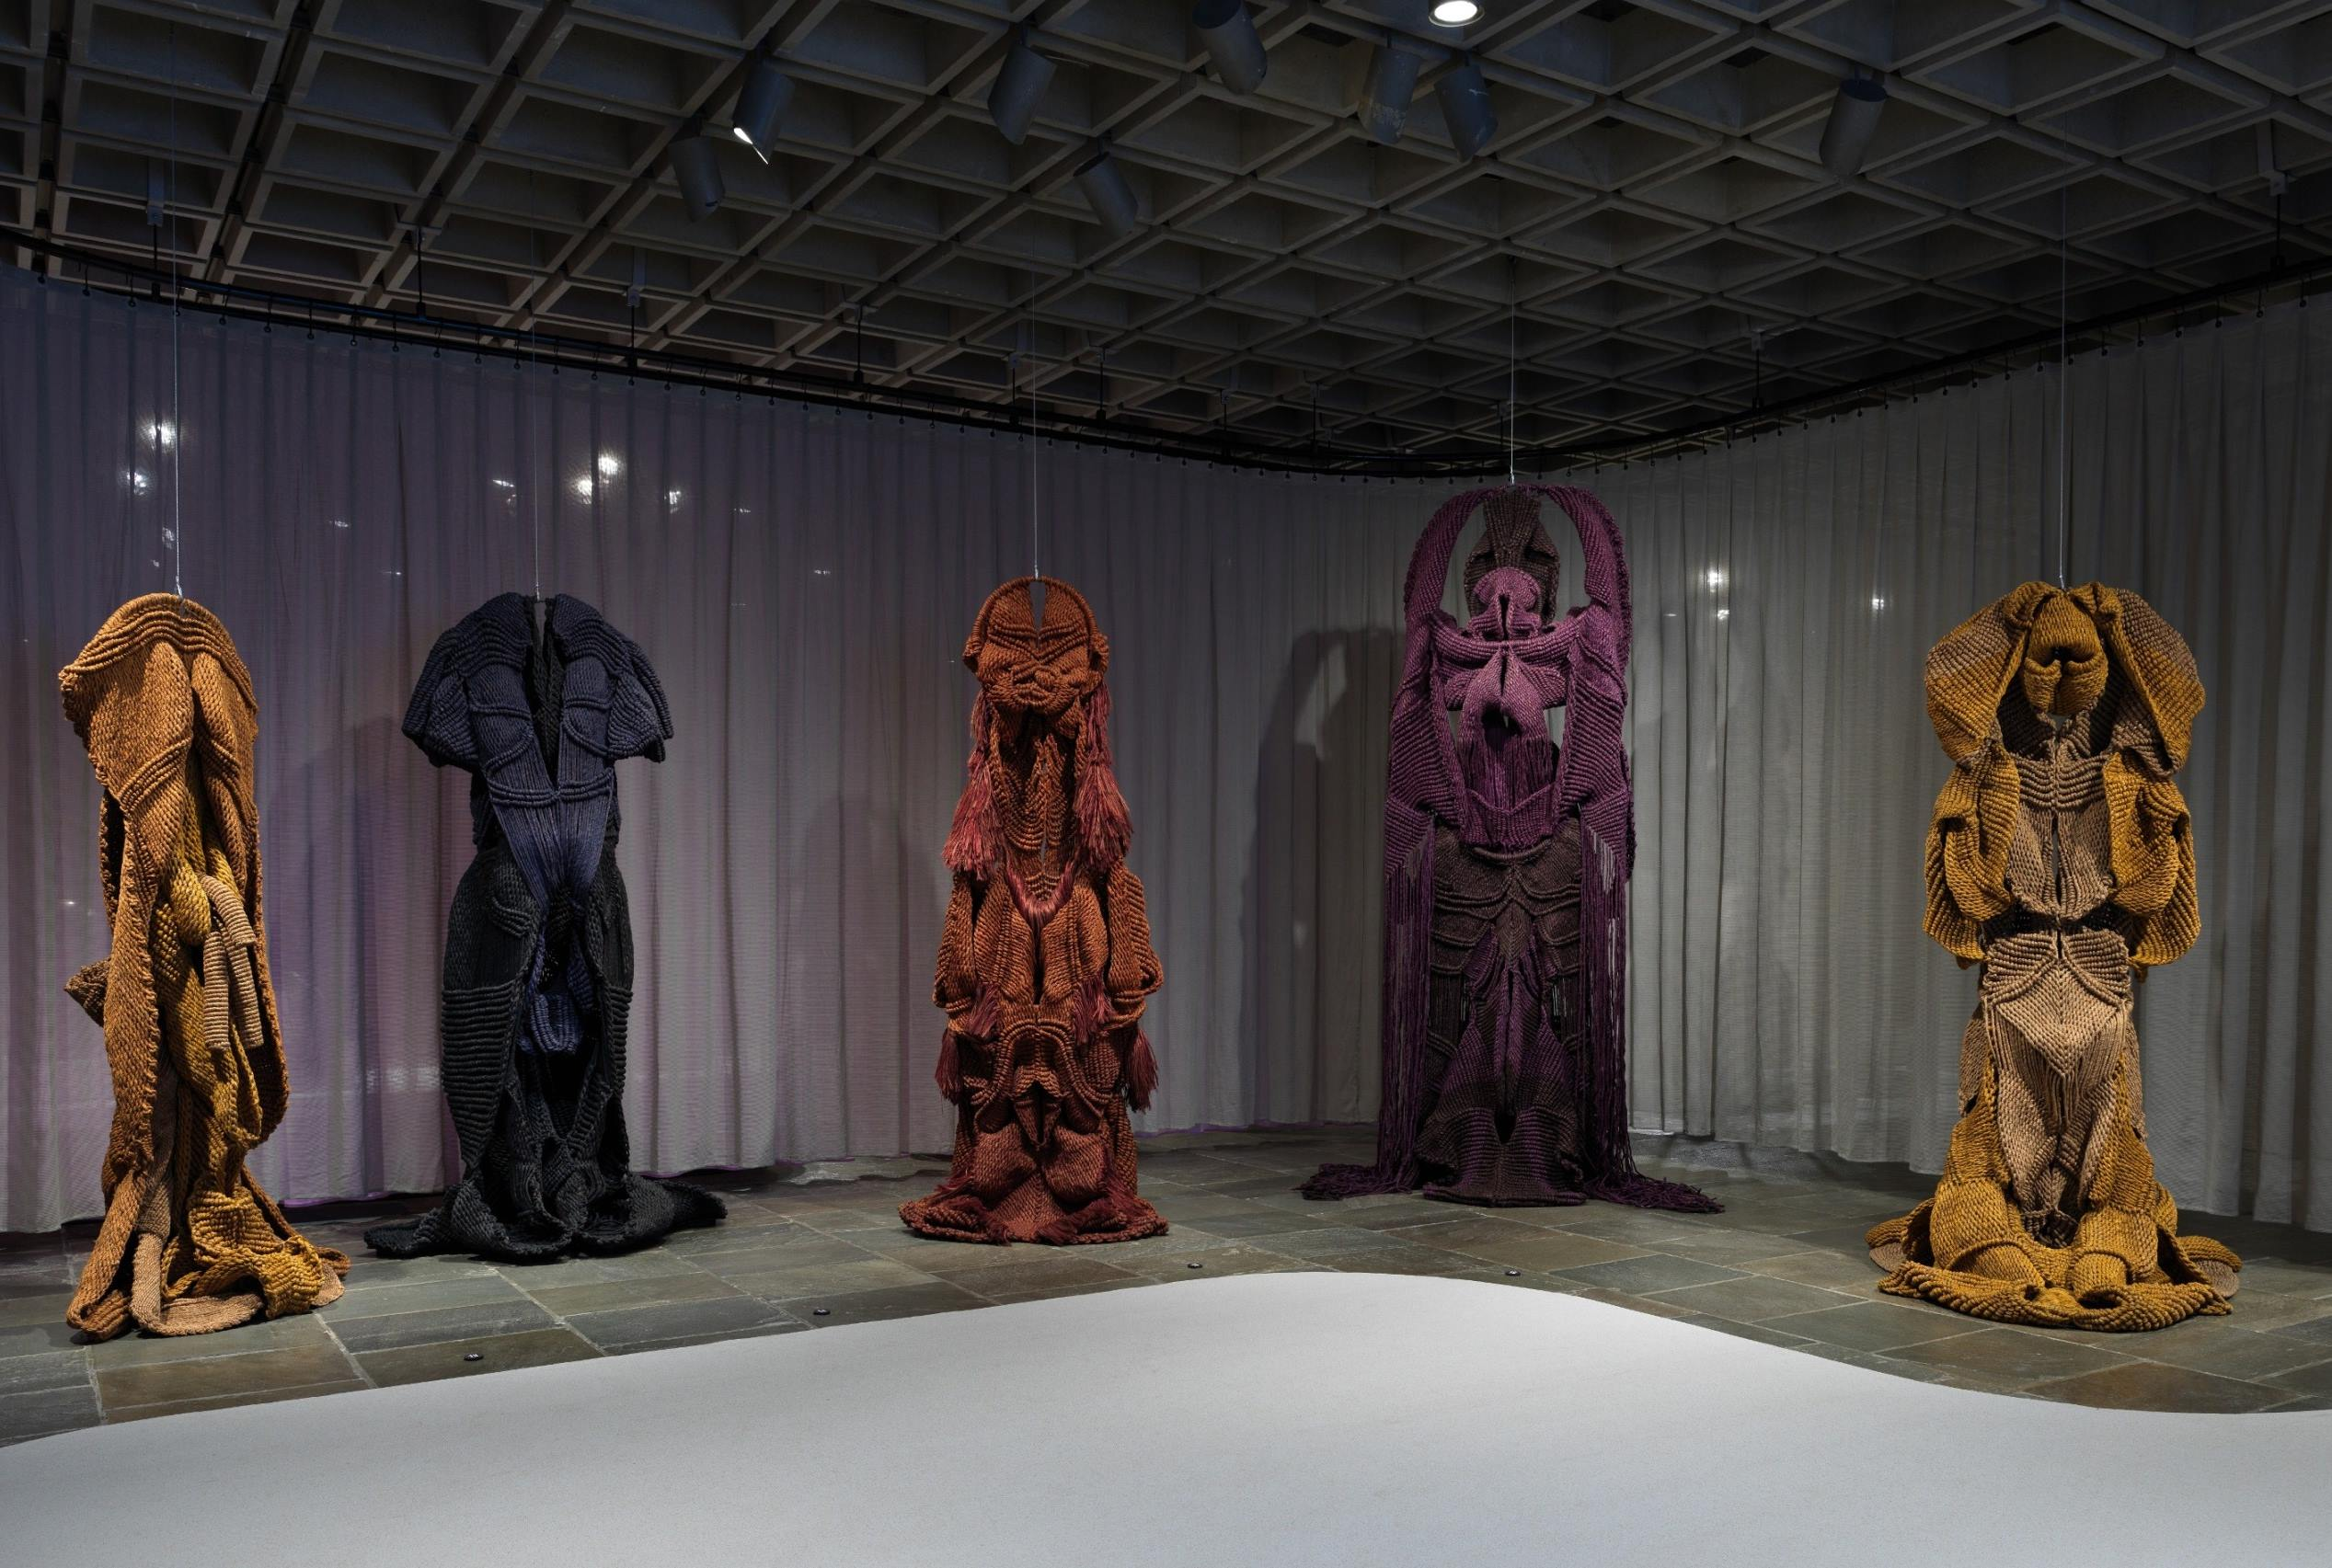 Installation view of Phenomenal Nature, Mrinalini Mukherjee at The Met Breuer, 2019. Courtesy The Metropolitan Museum of Art.